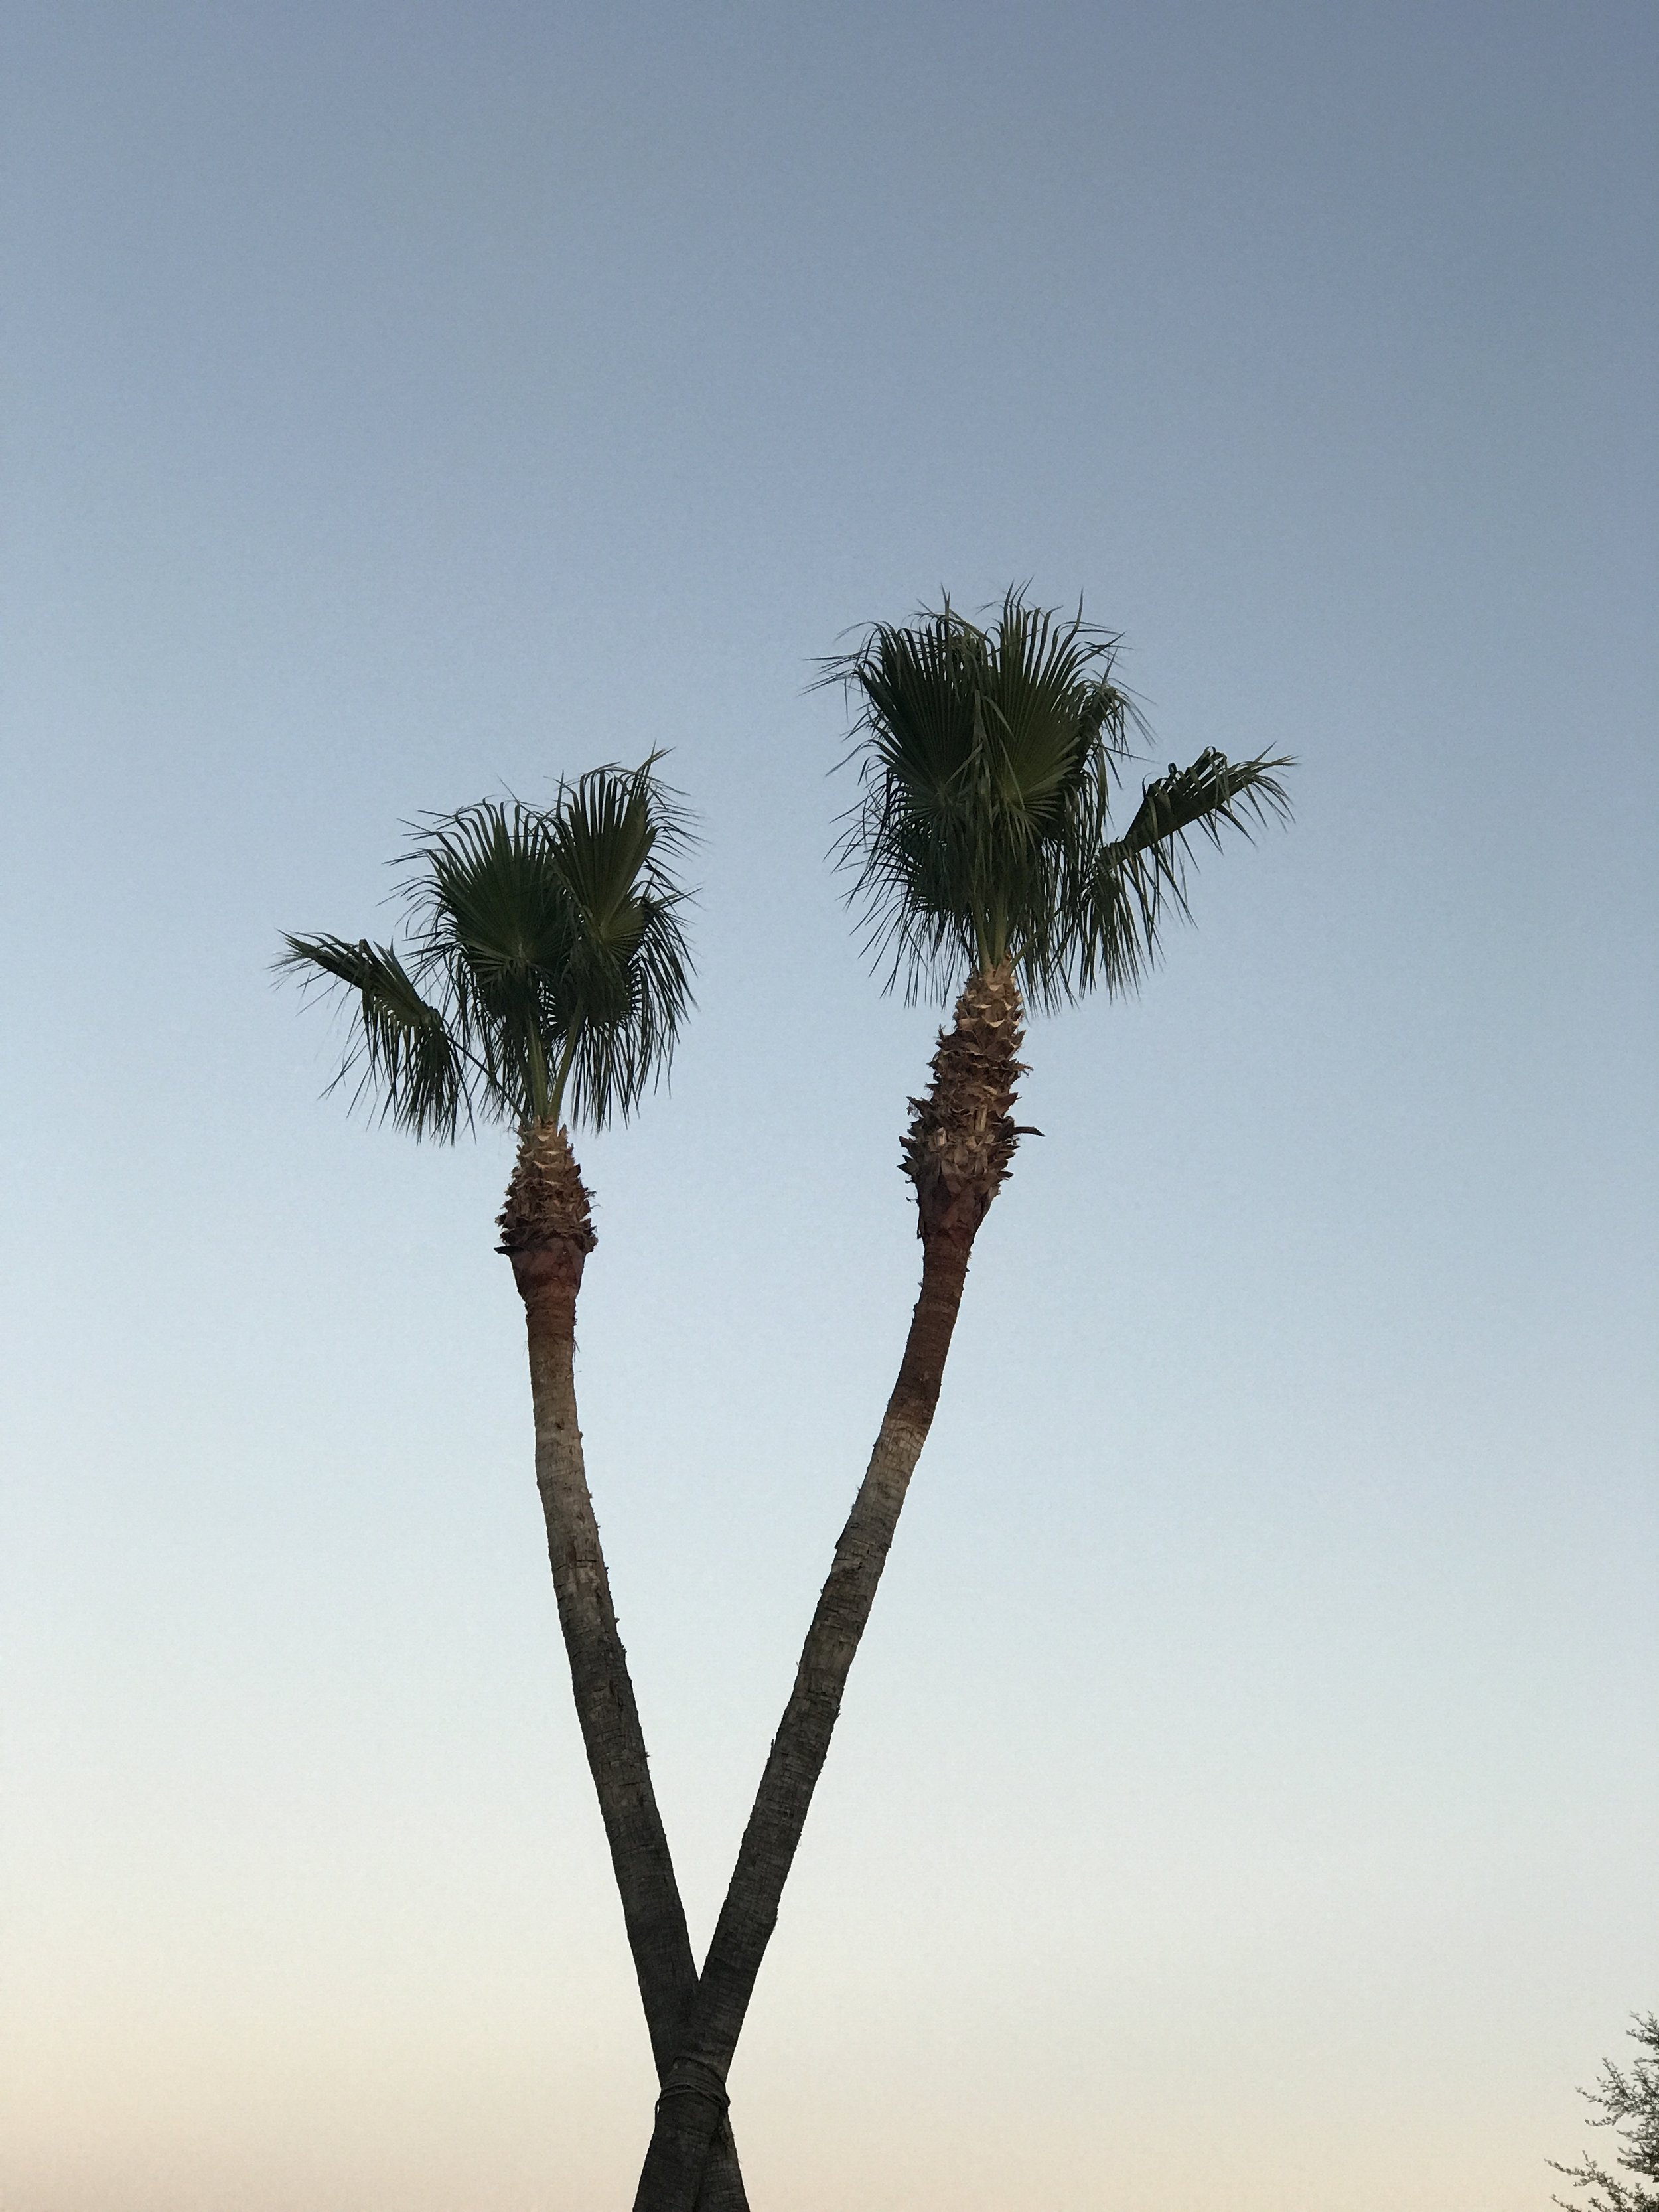 Had to capture these two palm trees hugging each other as we left  In-N-Out.